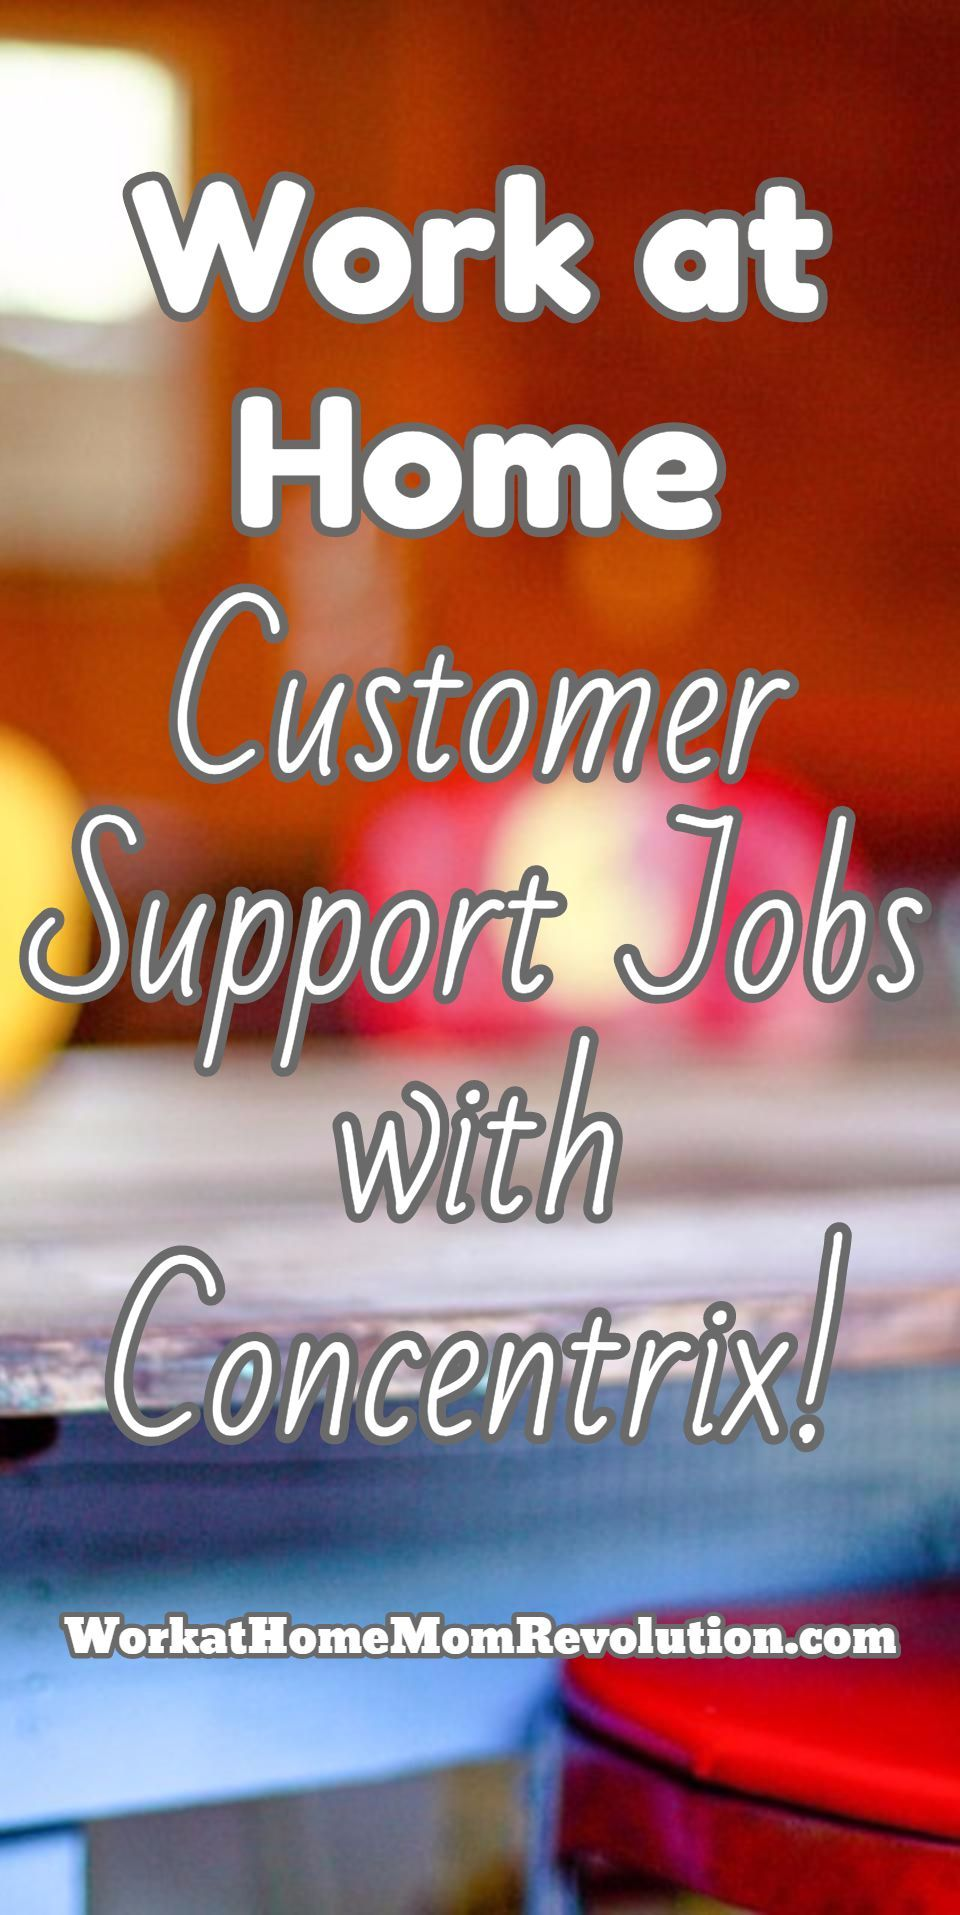 Work at Home Customer Support Jobs with Concentrix